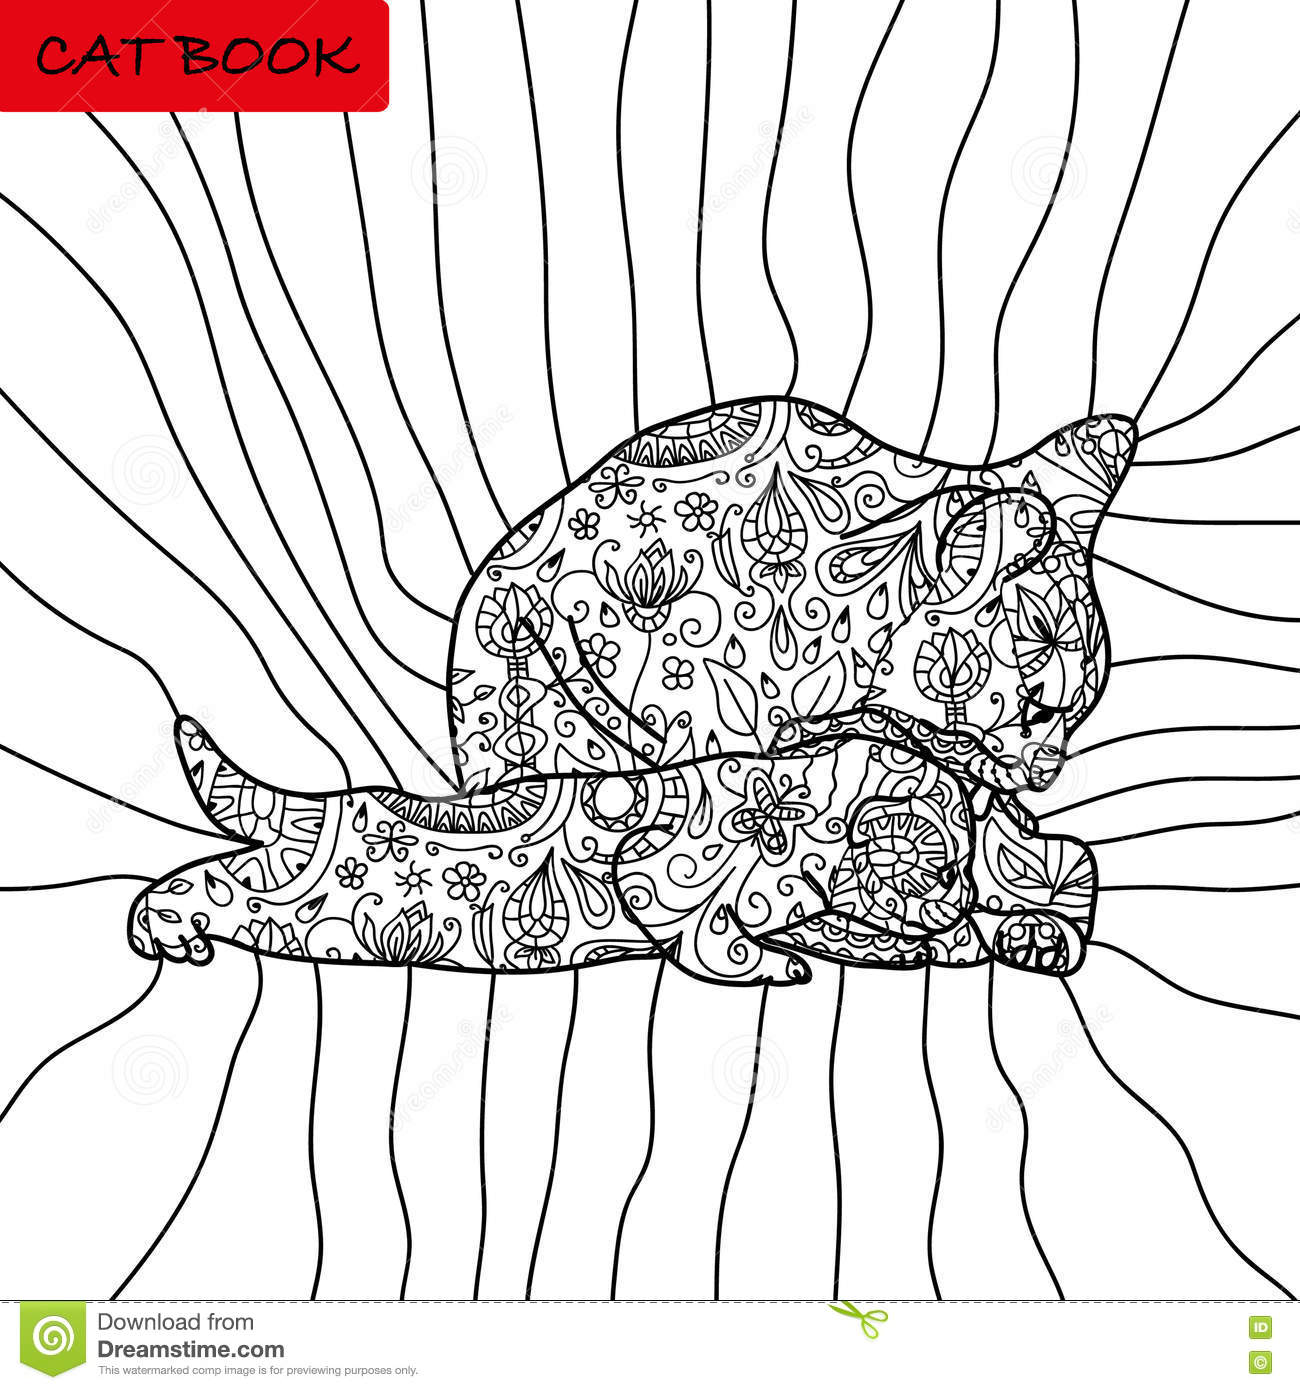 Cat and flower coloring pages - Book Coloring Pages For Adults And Children The Book Of The Cat